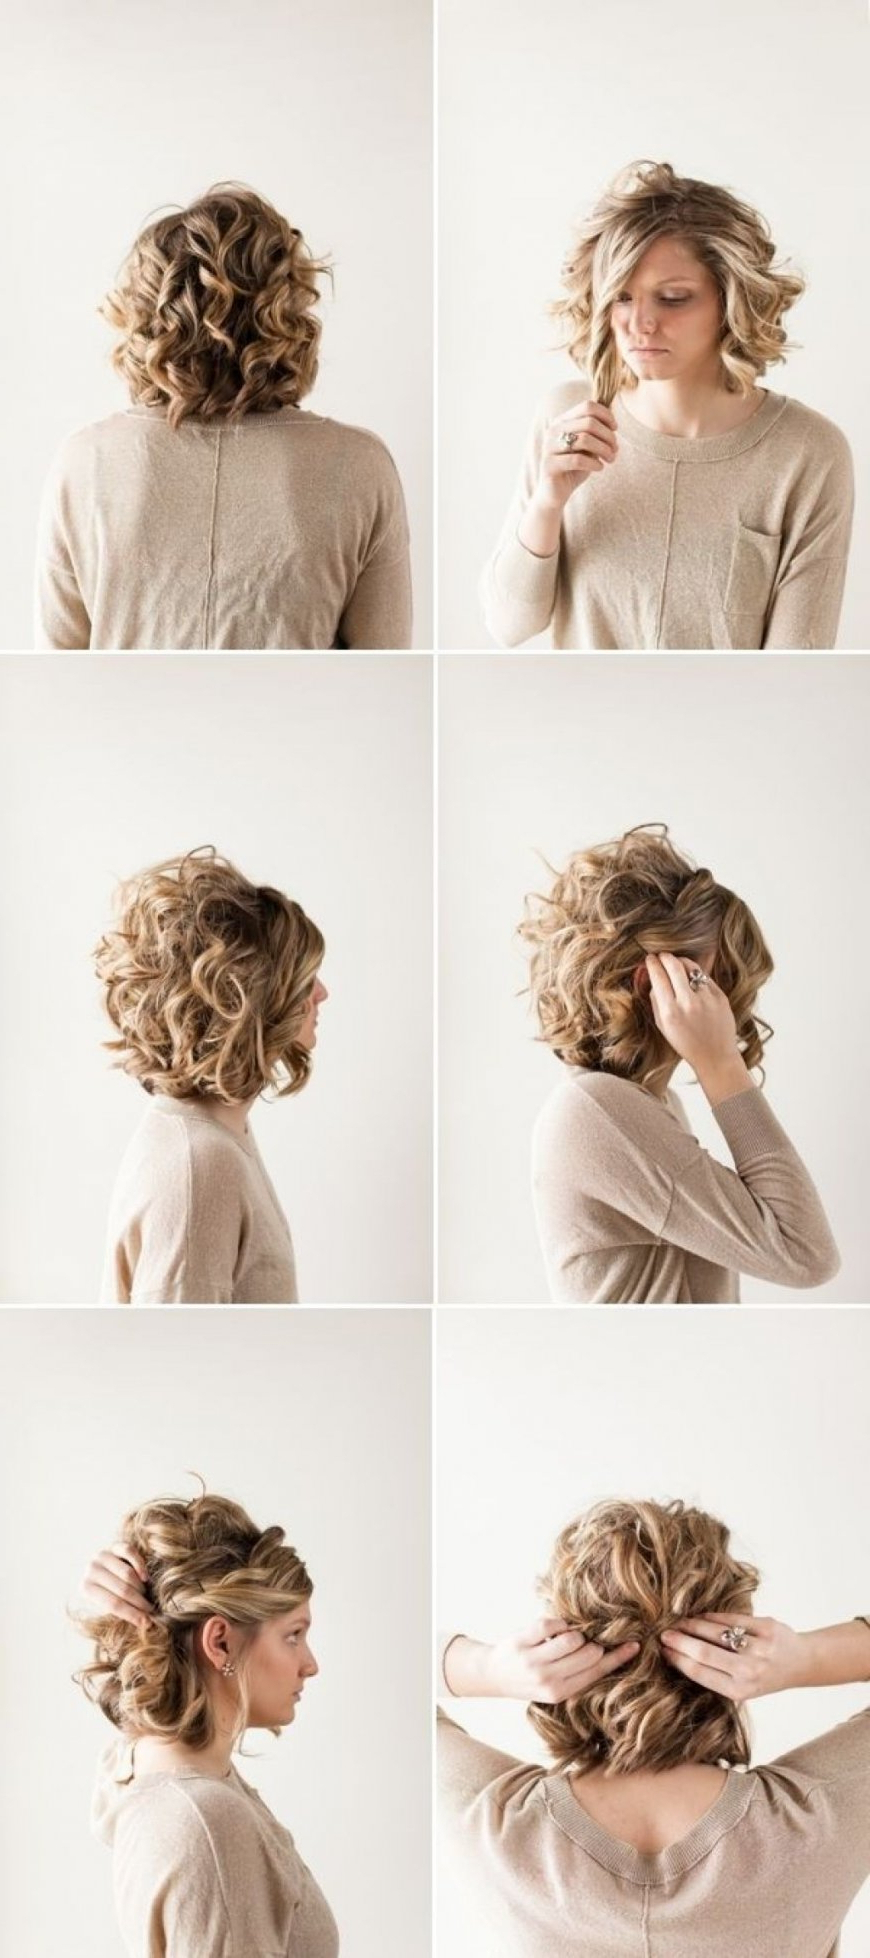 Cute Wedding Hairstyles For Short Hair » Best Hairstyles & Haircuts Throughout Hairstyles For Short Hair For Wedding (View 7 of 25)